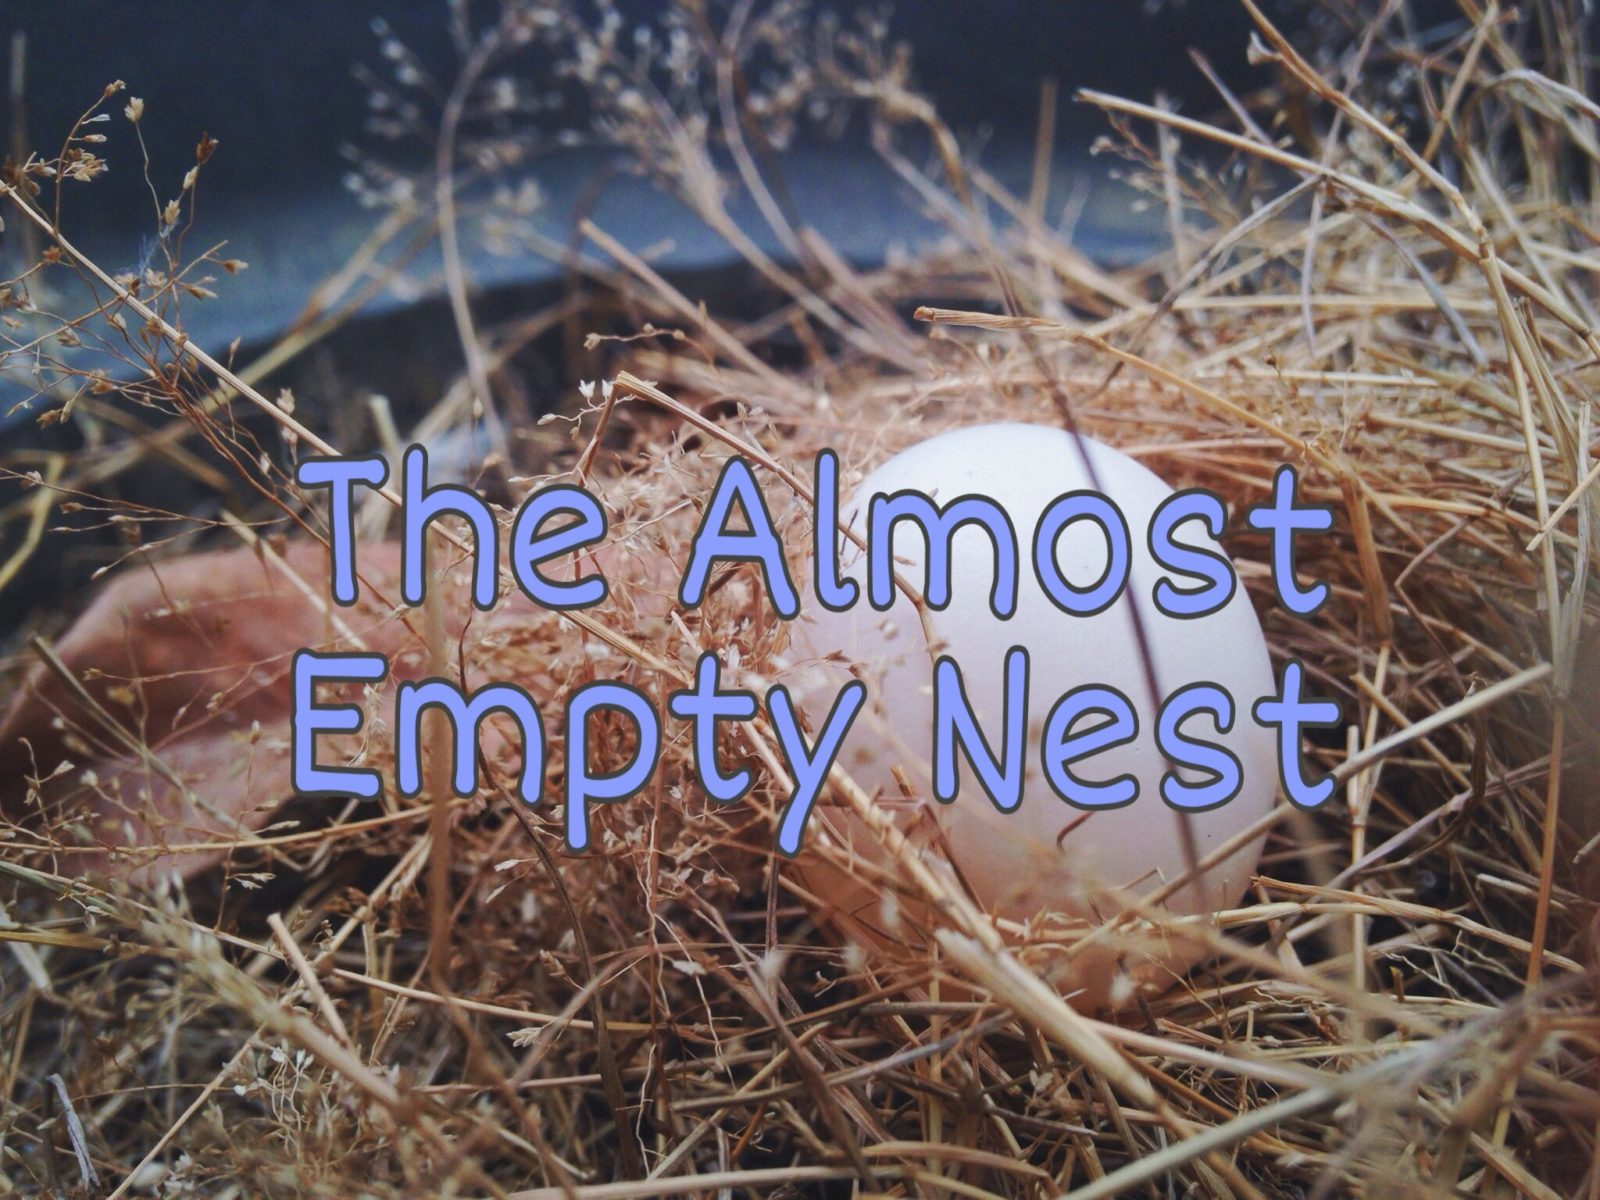 The Almost Empty Nest